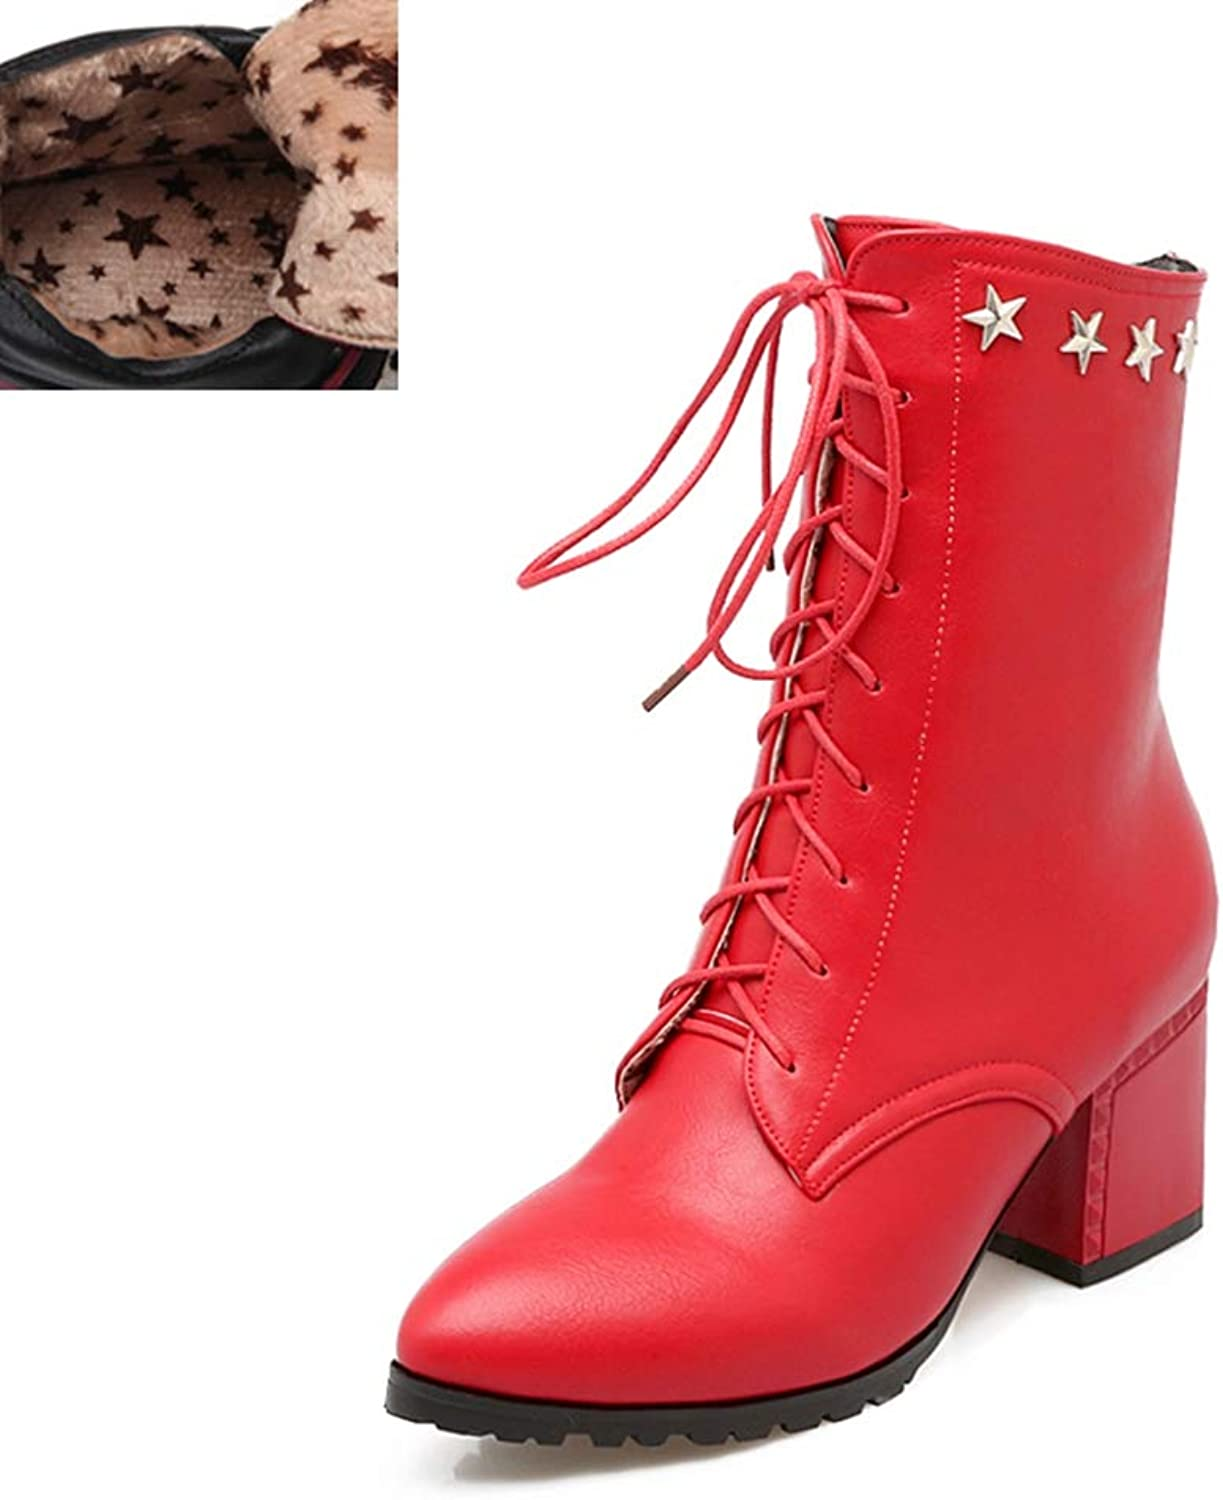 Btrada Women's Ankle Boots Stars Decoration Fashion Square Heels Winter shoes Lace Up Zipper Sexy Booties